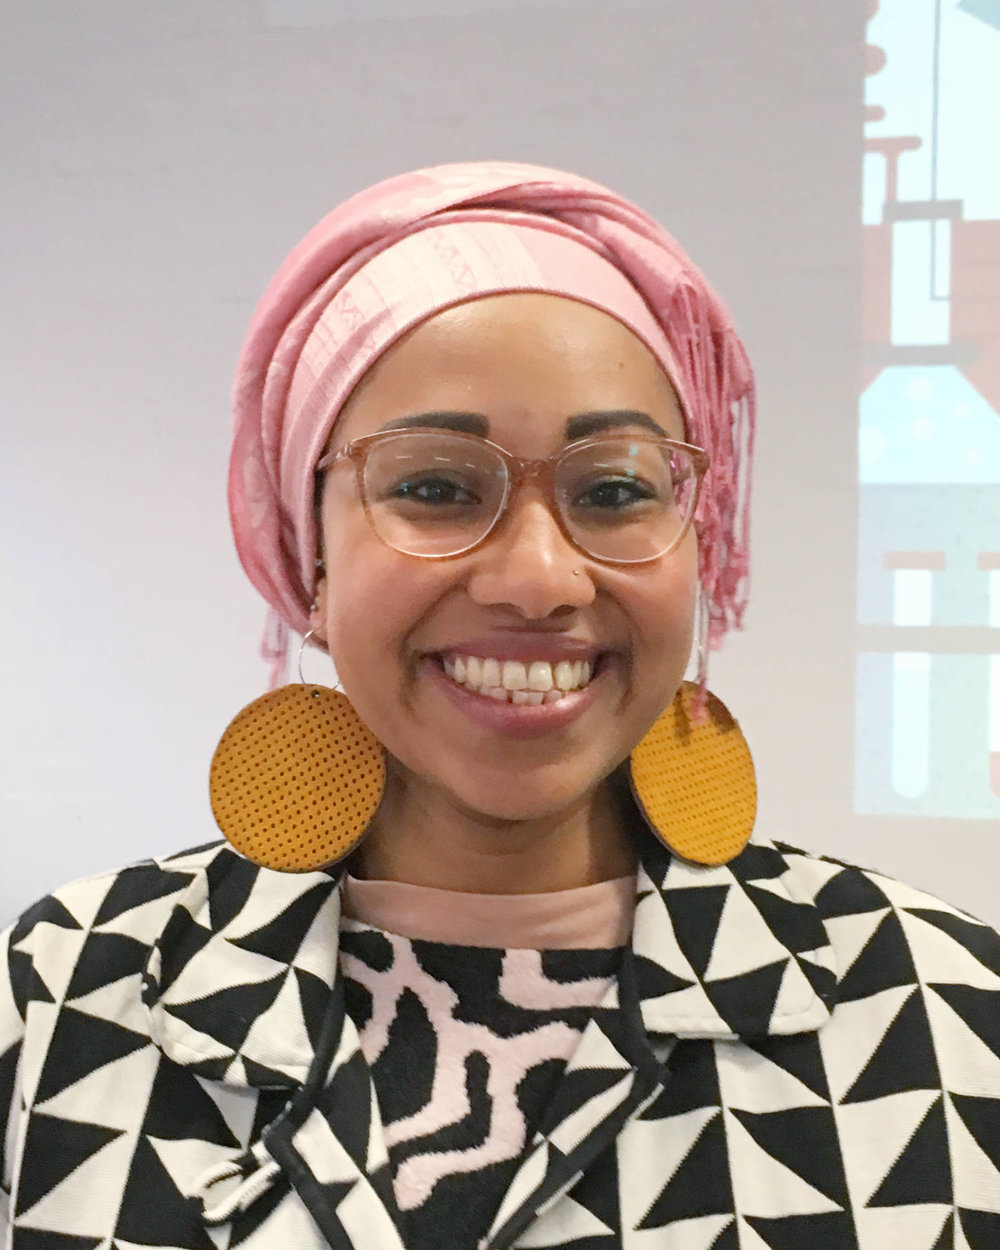 Yassmin Abdel-Magied at Creative Mornings Melbourne on 25 August 2017. Photo by Jade Tjia.